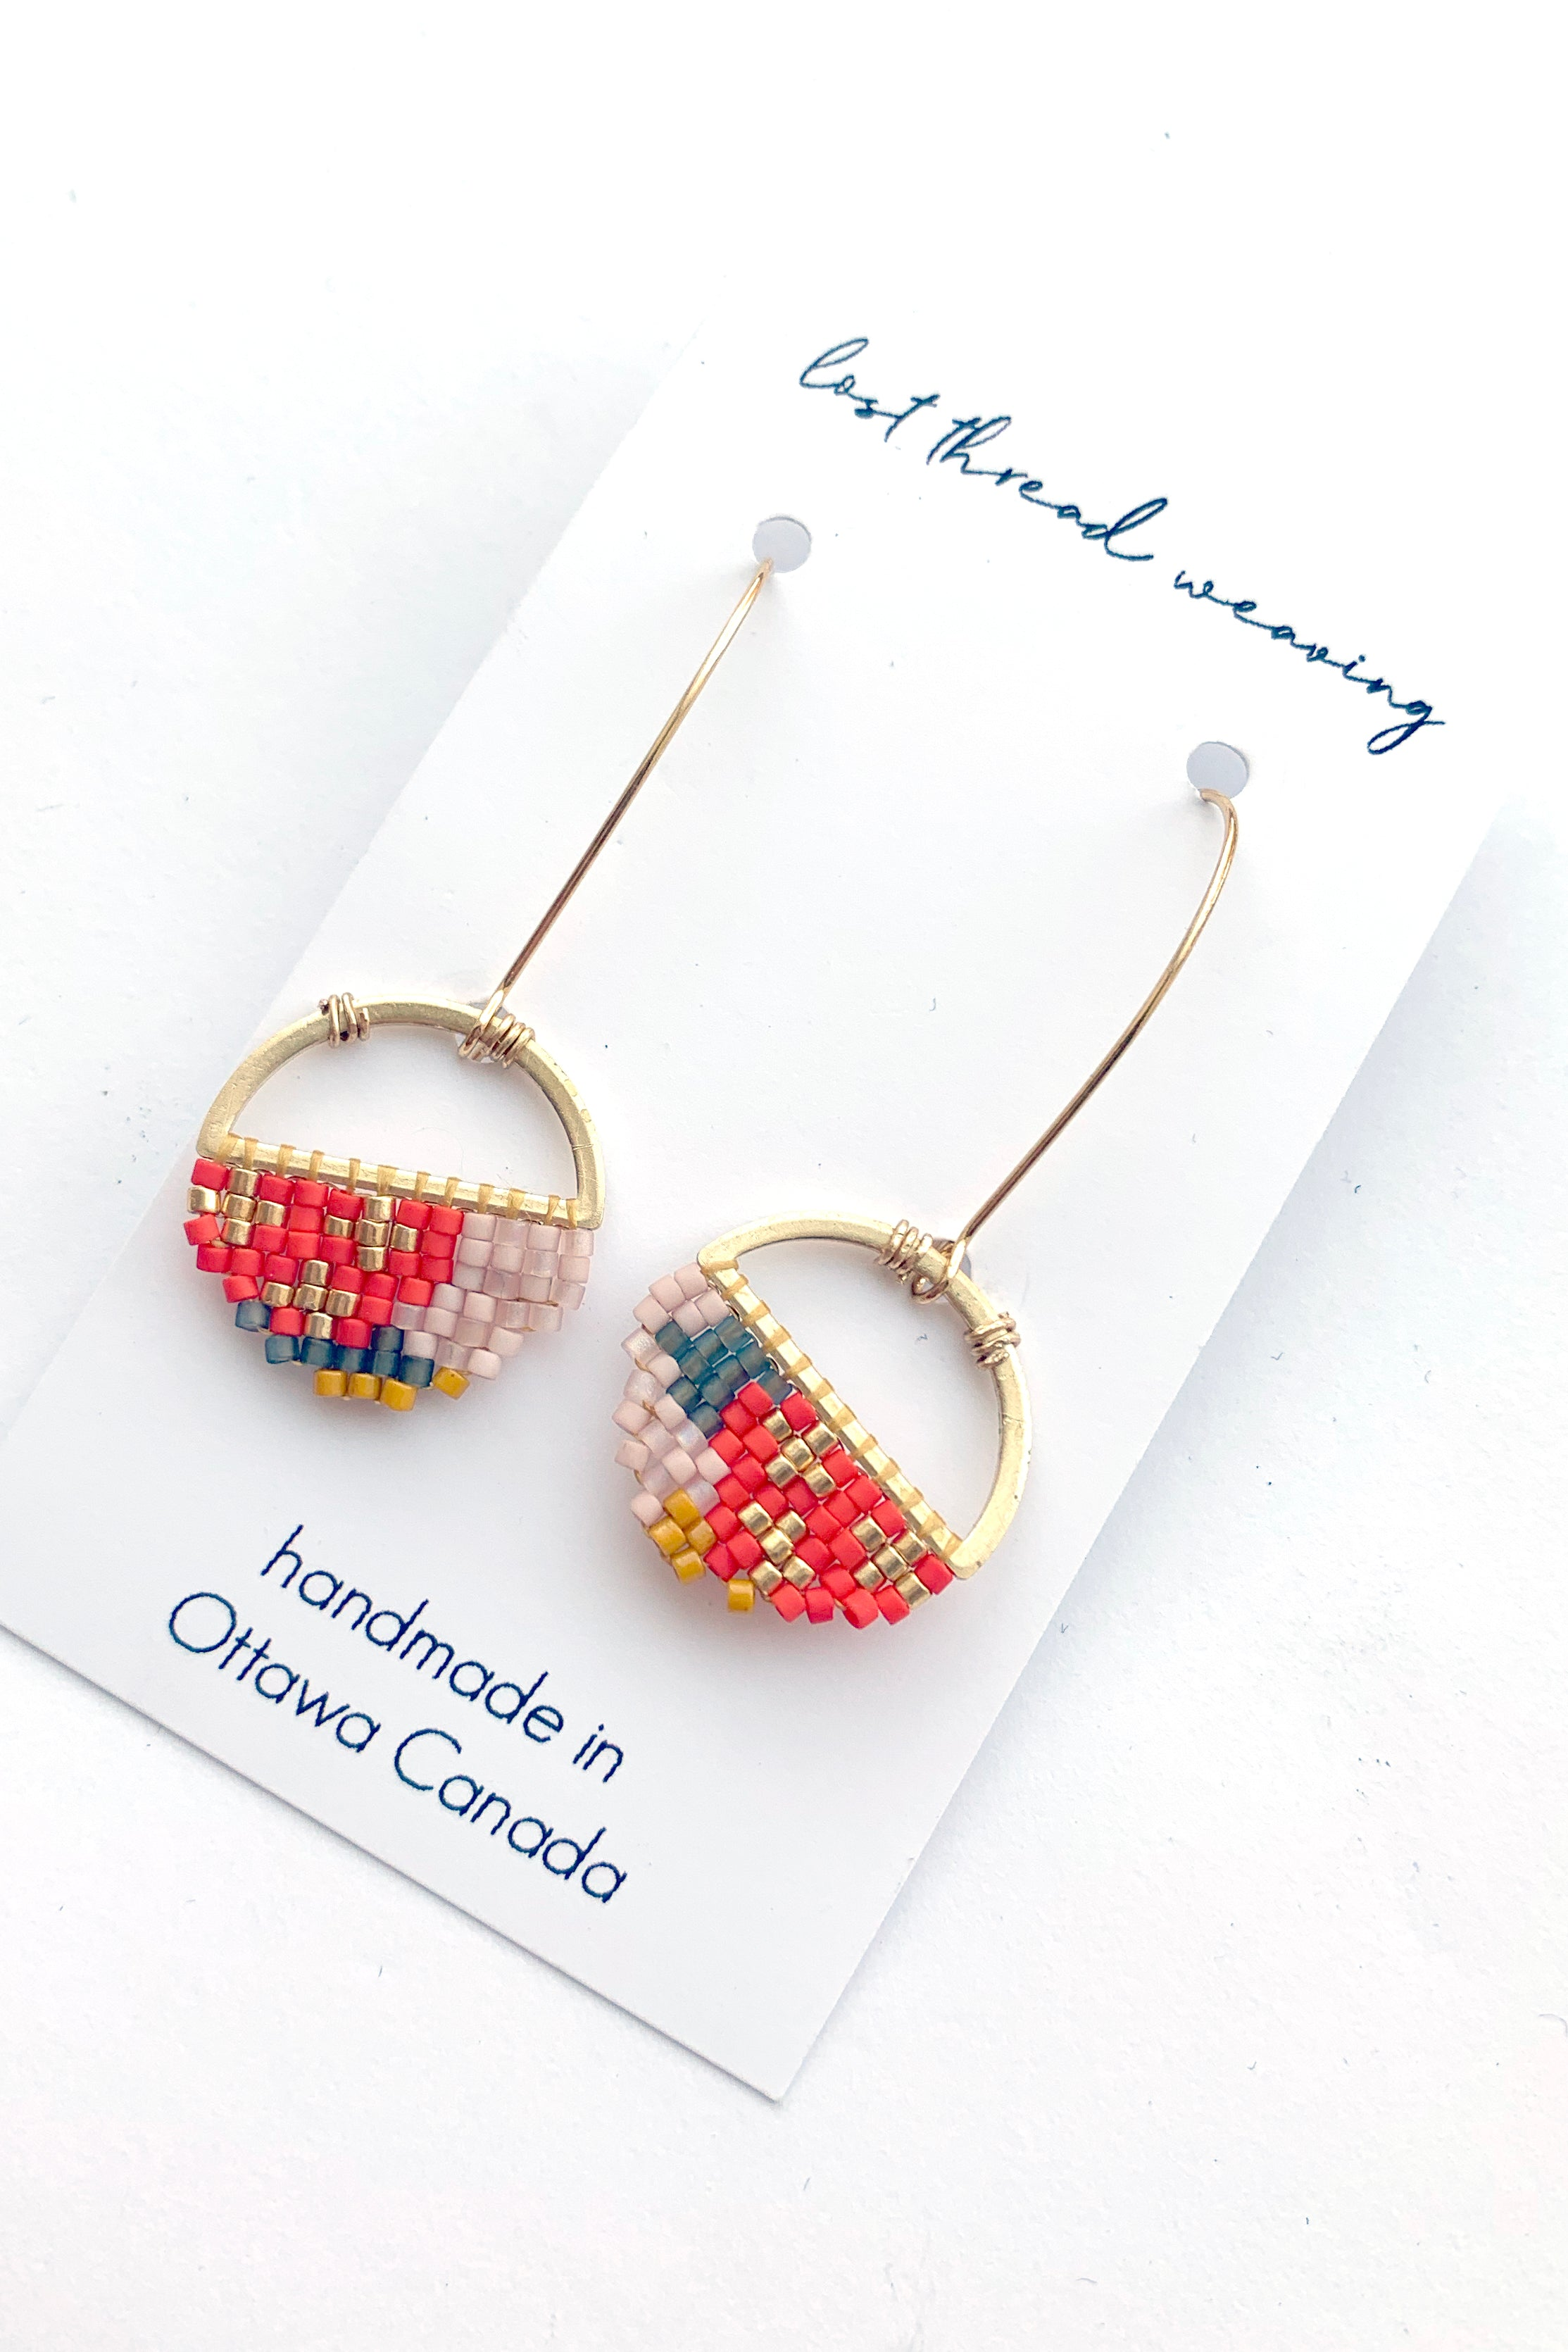 Sally Round Beaded Earrings - Red, Blush and Mustard